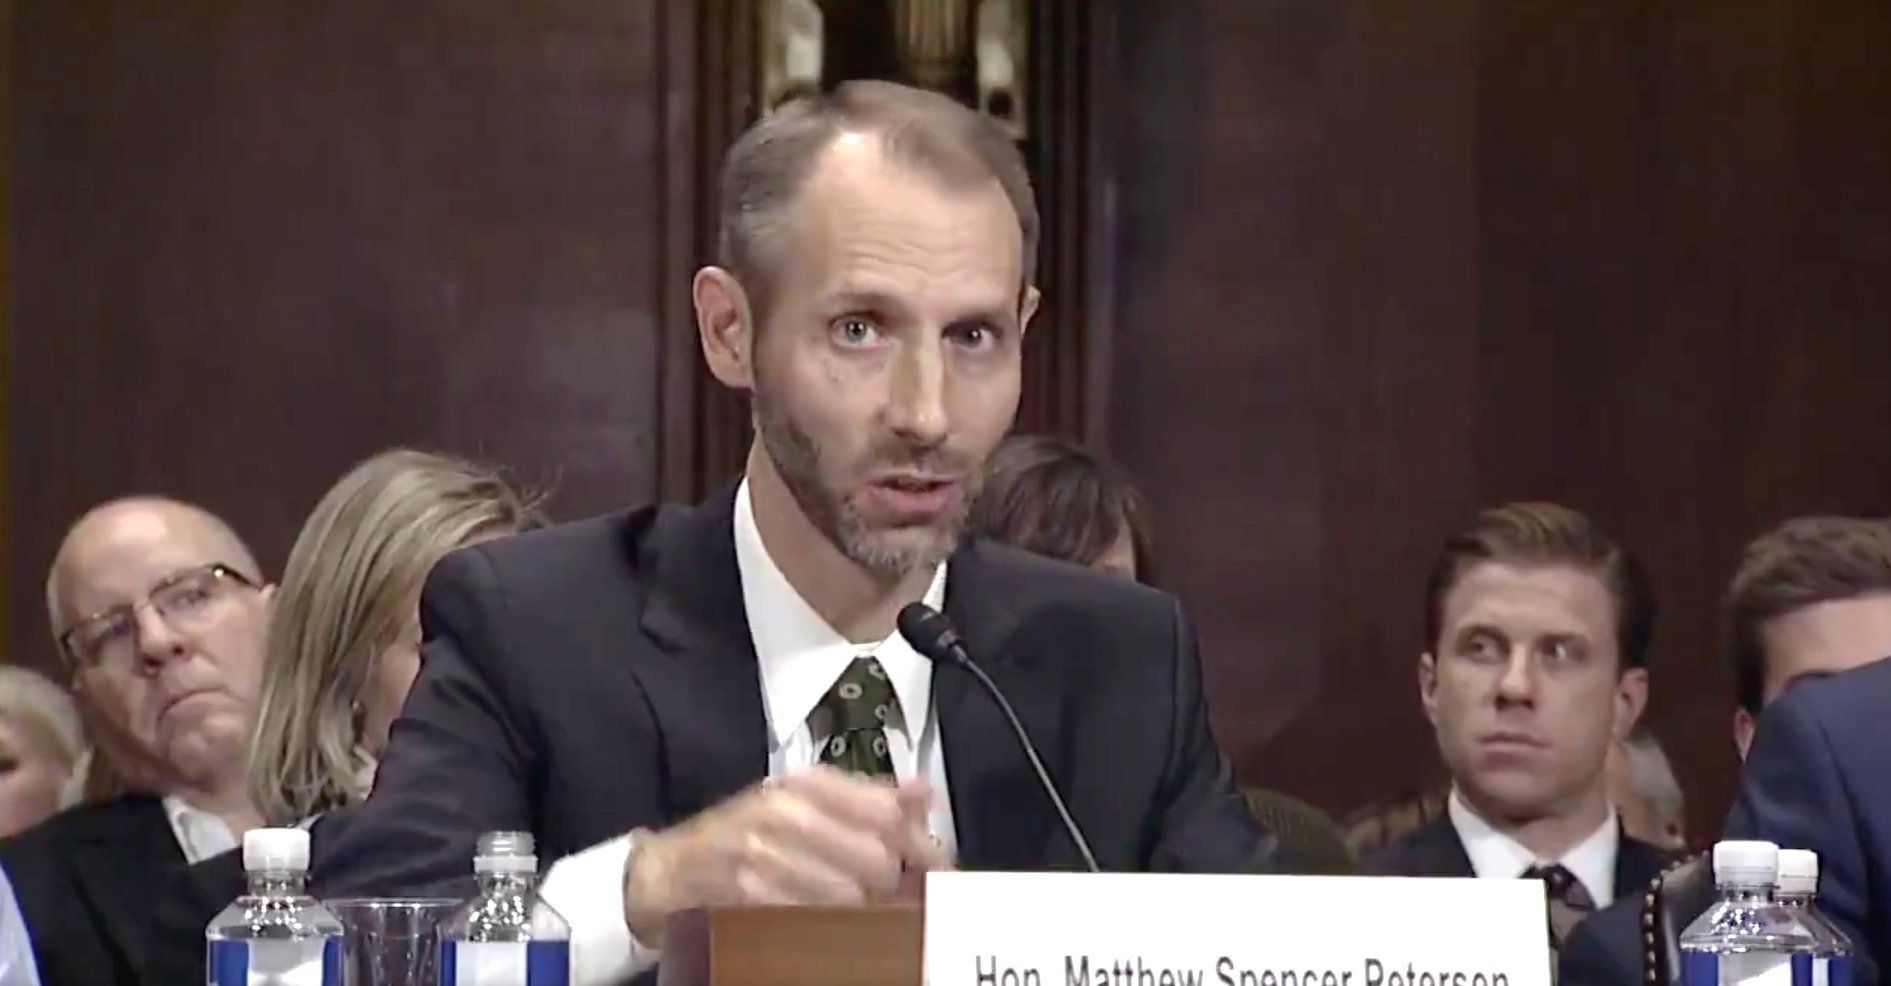 Trump Judicial Nominee Can't Answer Basic Questions About The Law In Disastrous Hearing